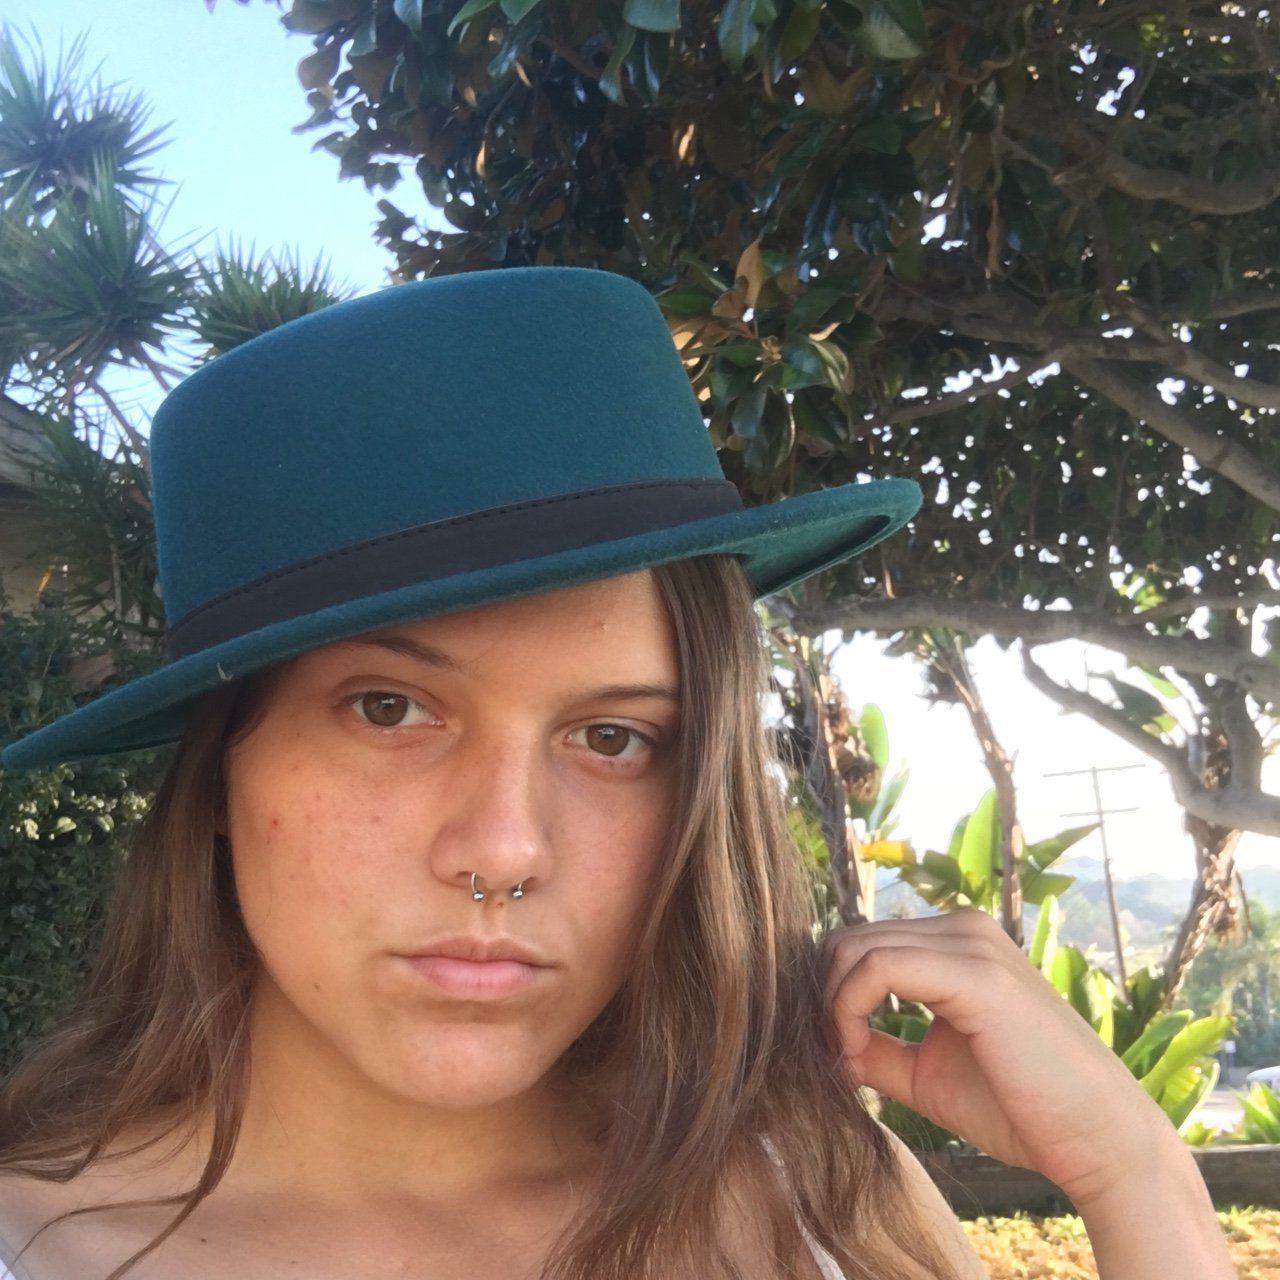 Beautiful Brixton Boater hat (say that 5 times fast!) teal  358343ab29d